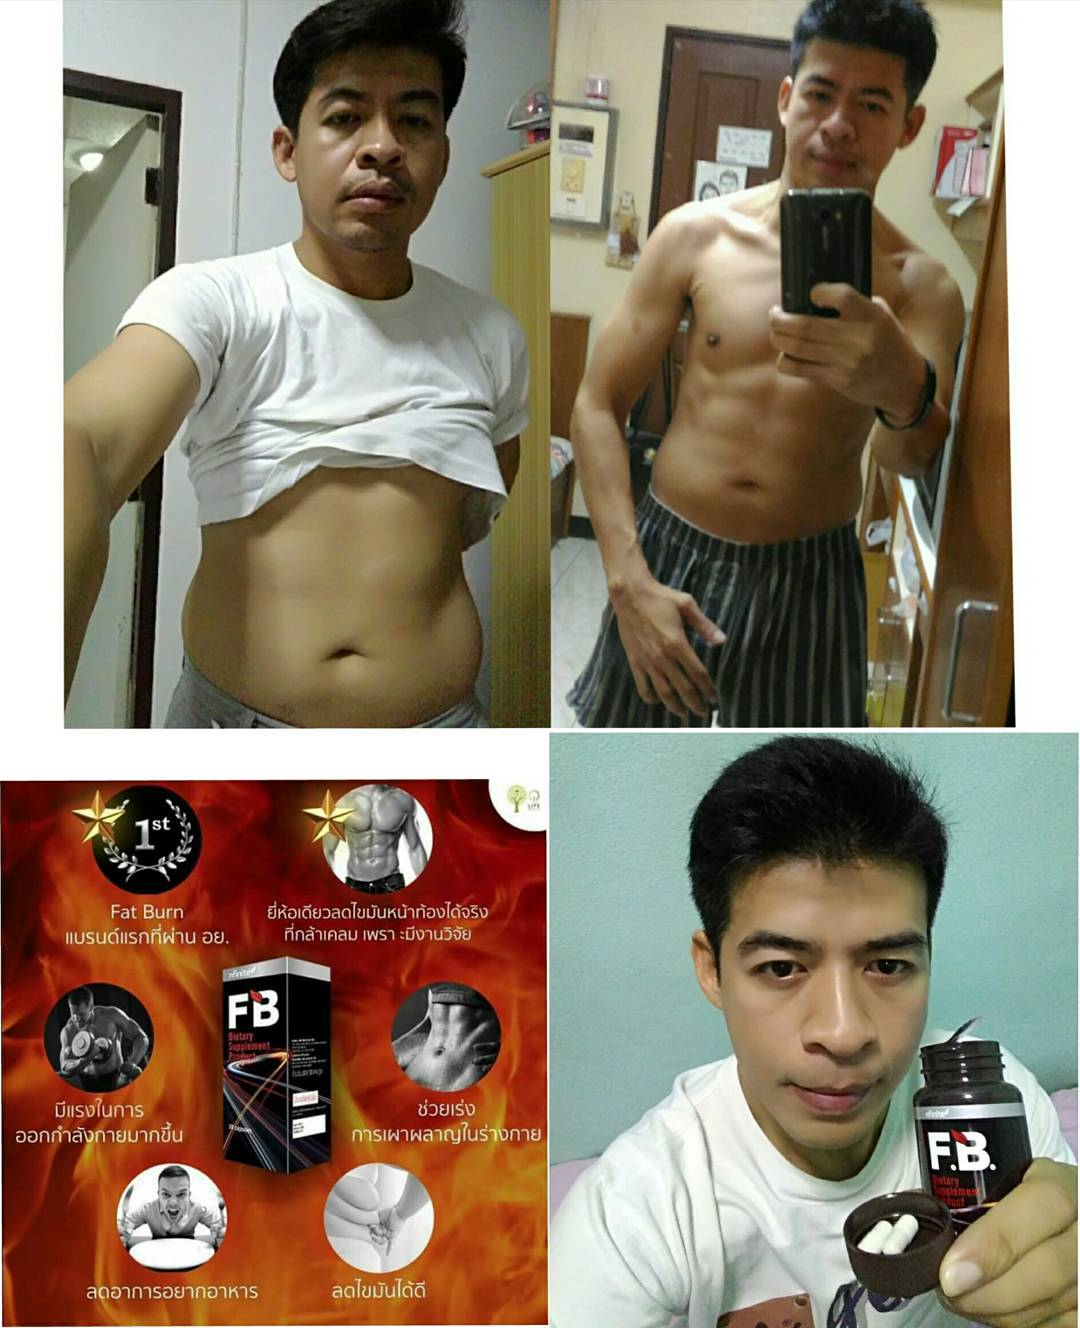 How to reduce body fat by diet image 8